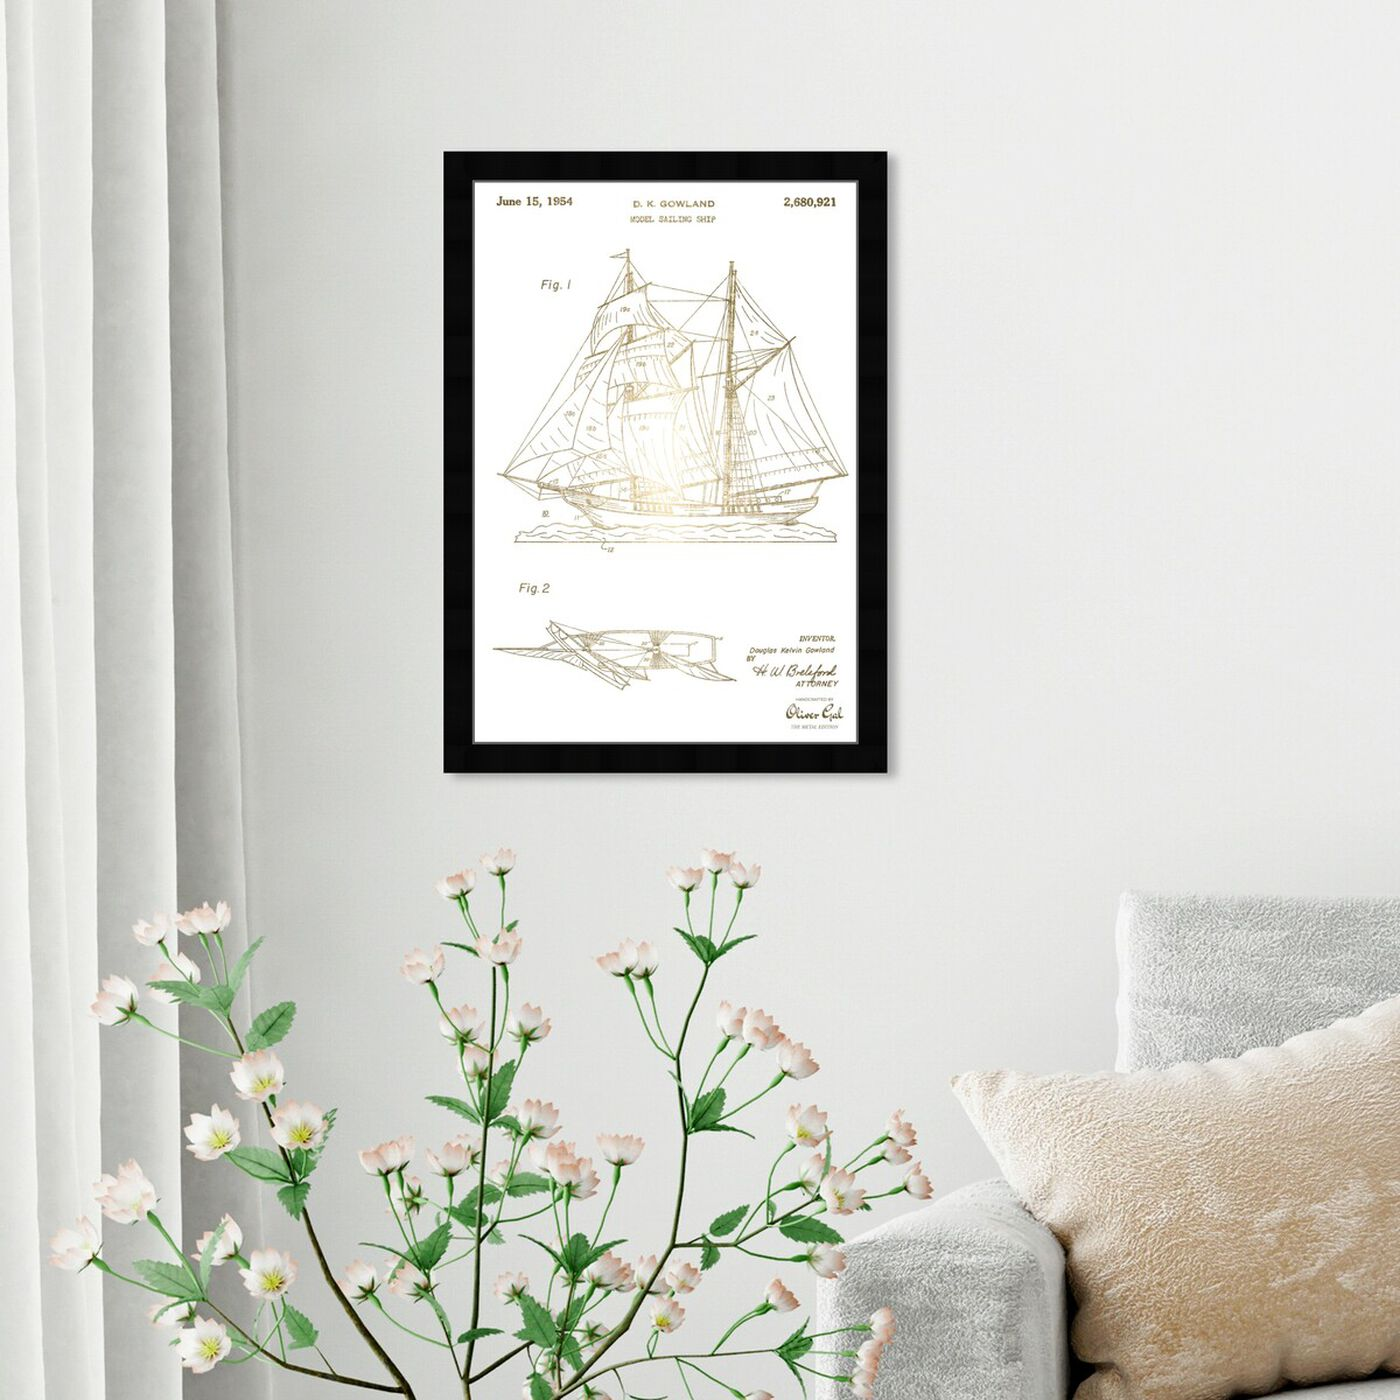 Hanging view of Model Sailing Ship 1954 I featuring transportation and boats and yachts art.